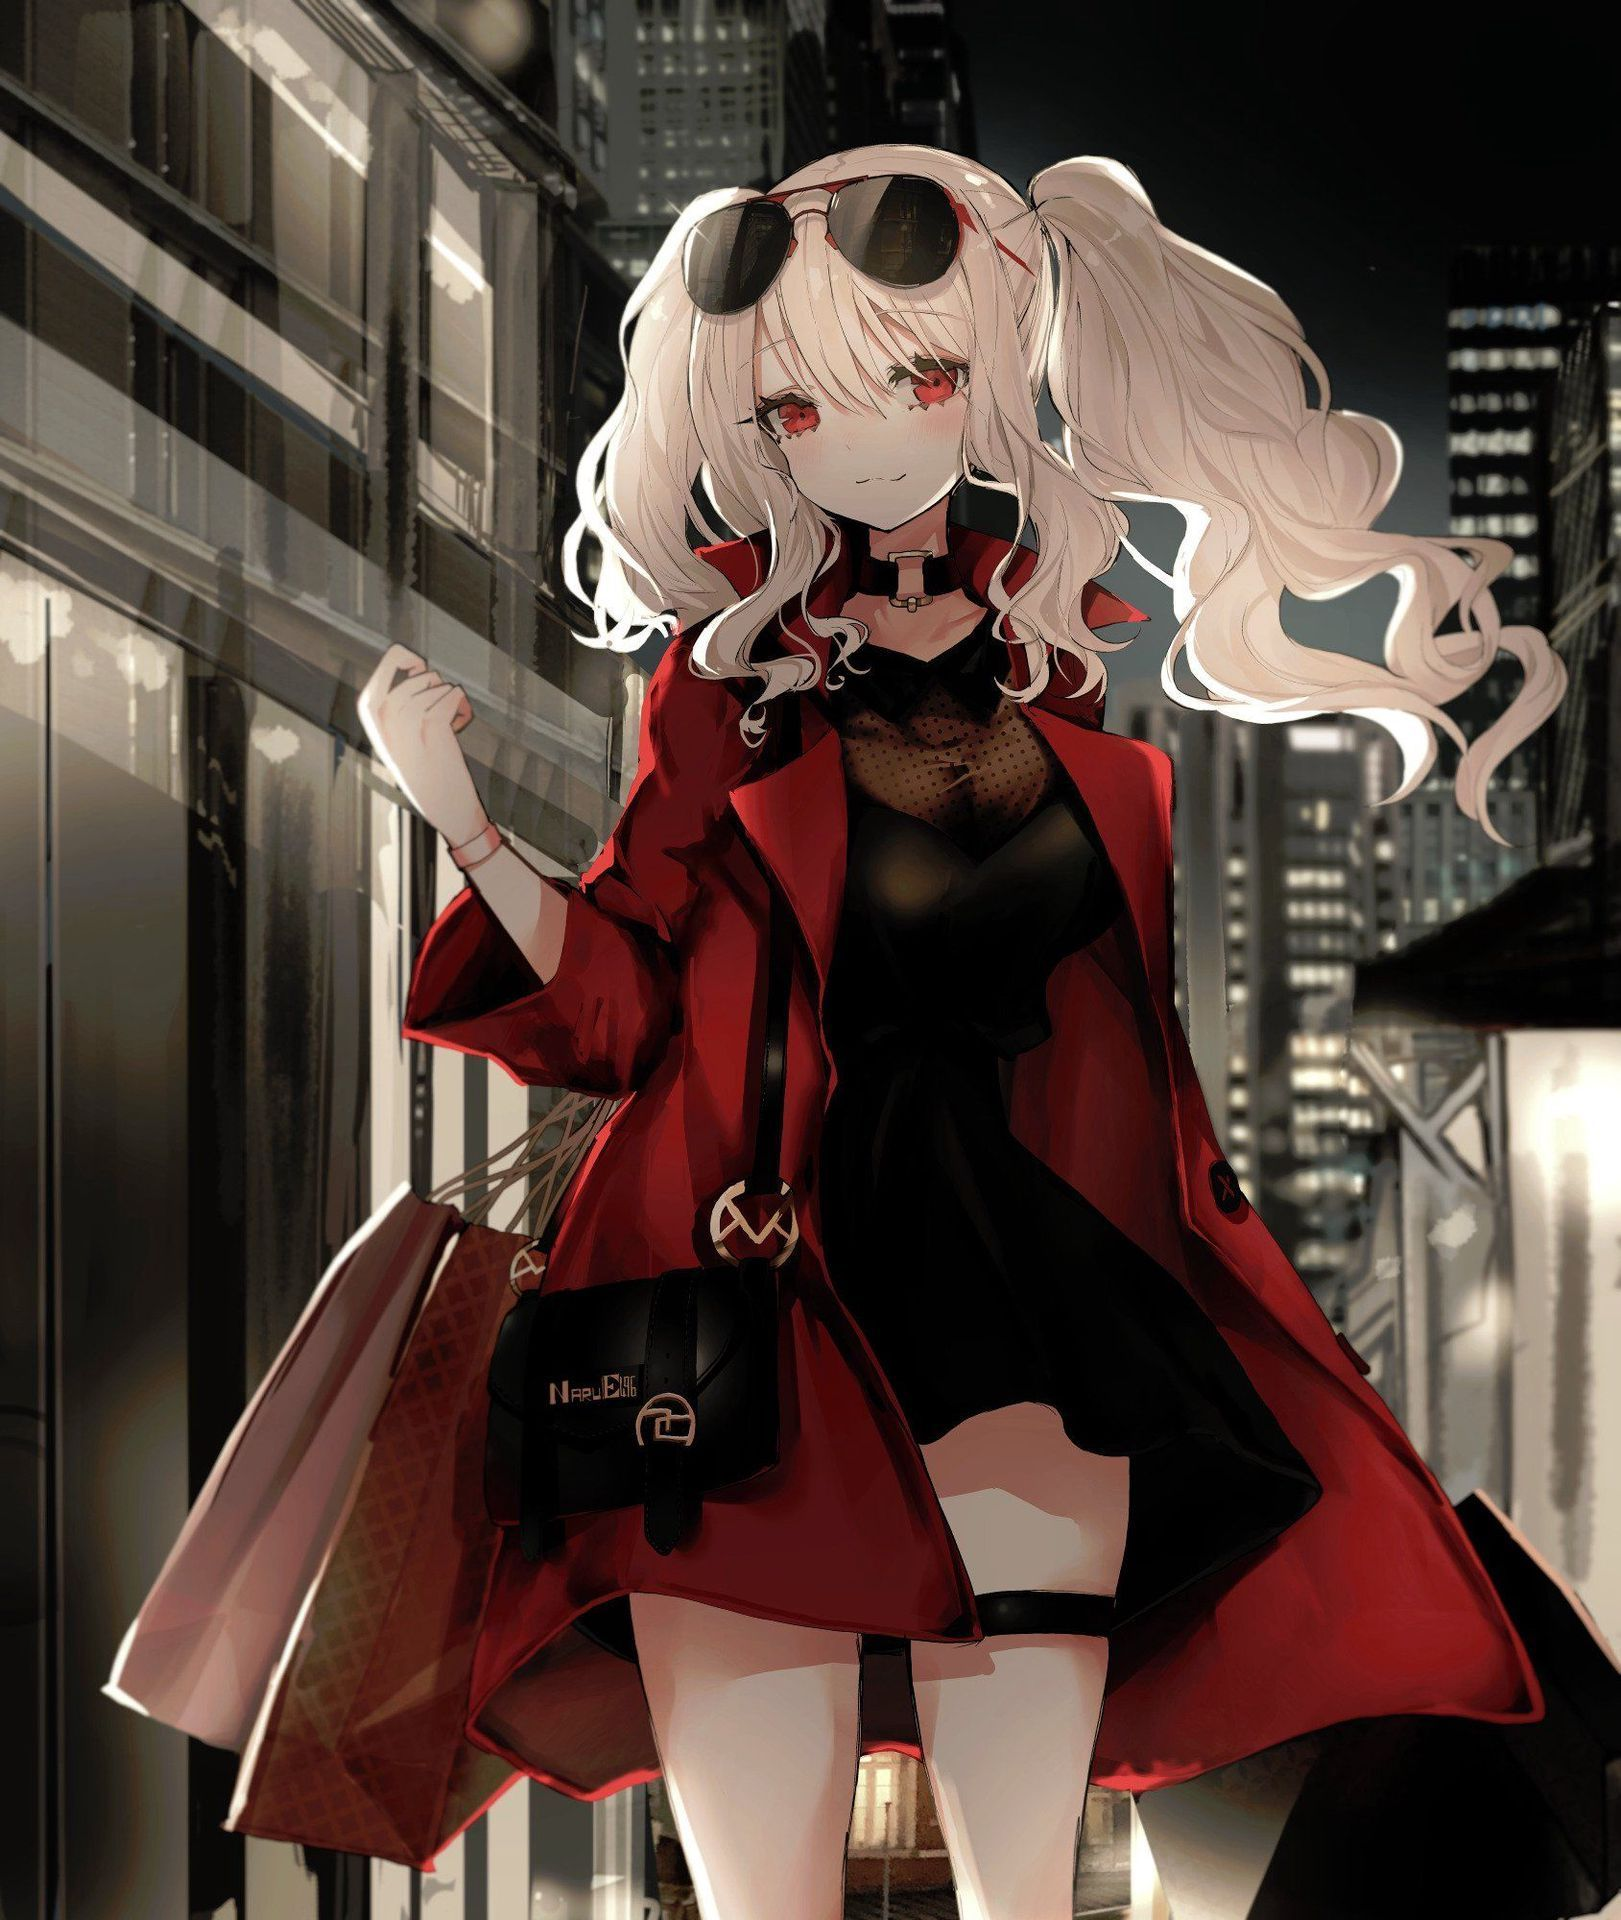 The Villainess School Girl Character Profile In 2020 Girls Characters Anime Art Girl Anime